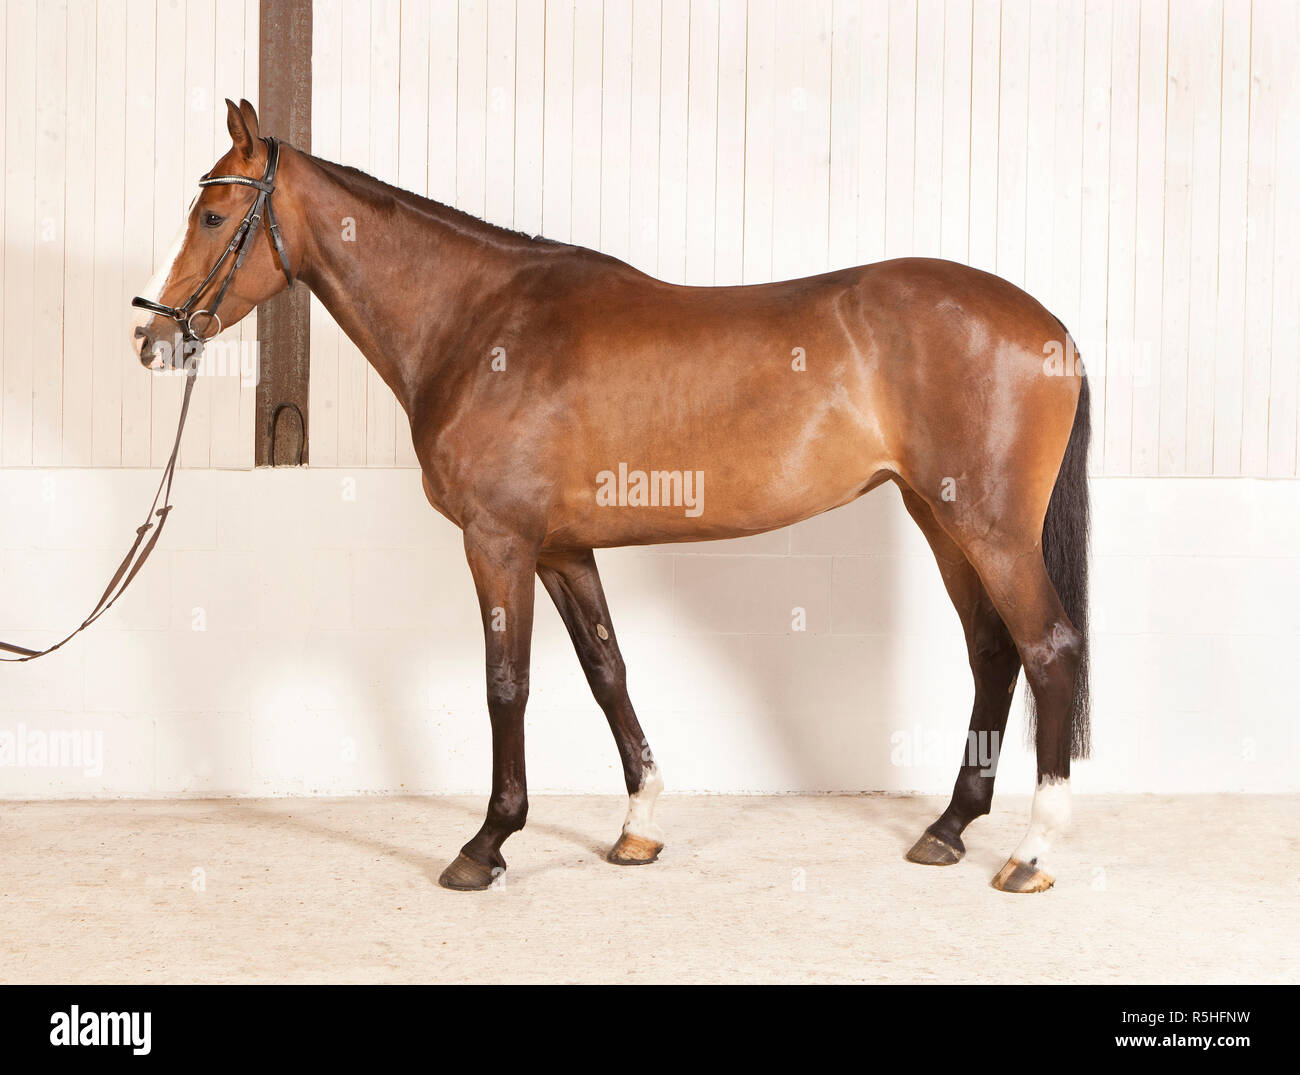 horse physique - Stock Image